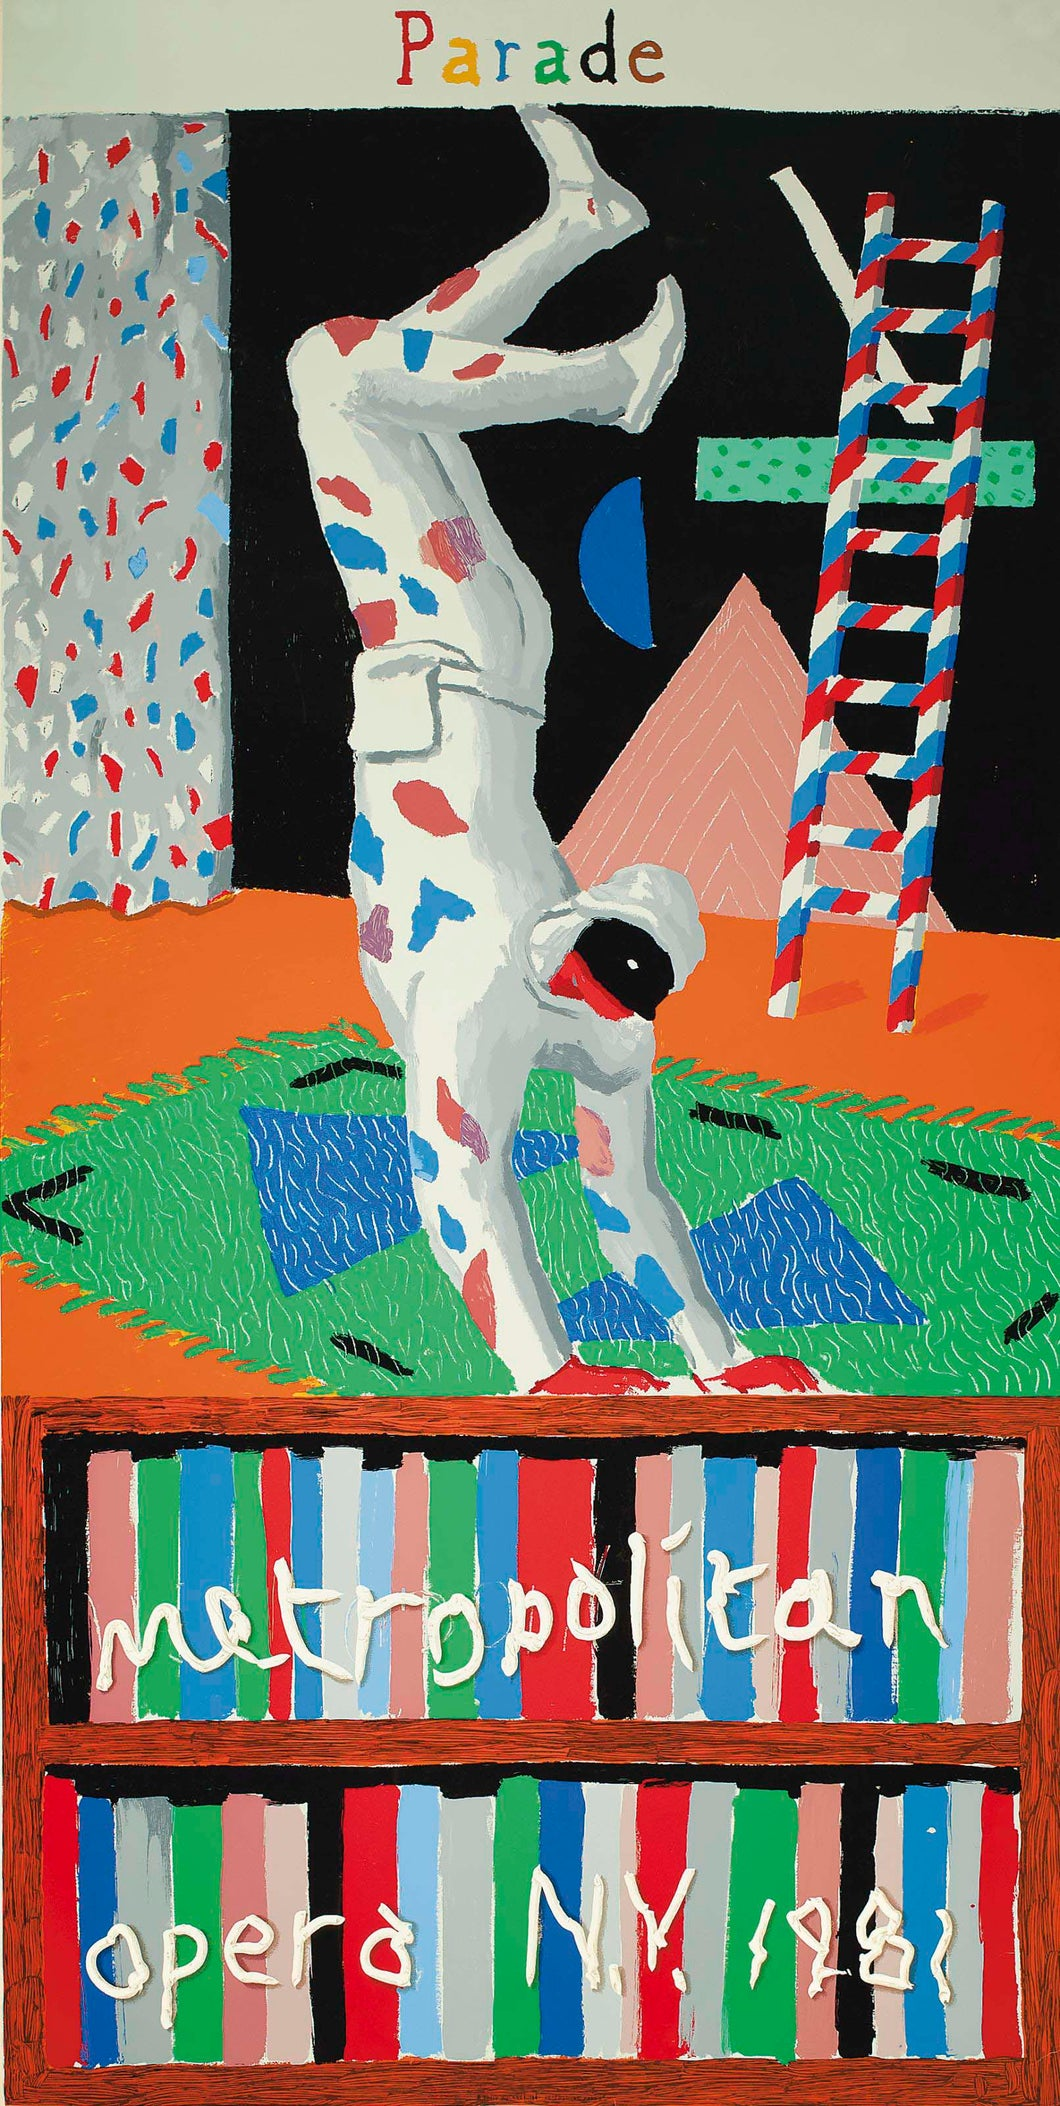 'Parade'- Met Opera poster by David Hockney (1981)